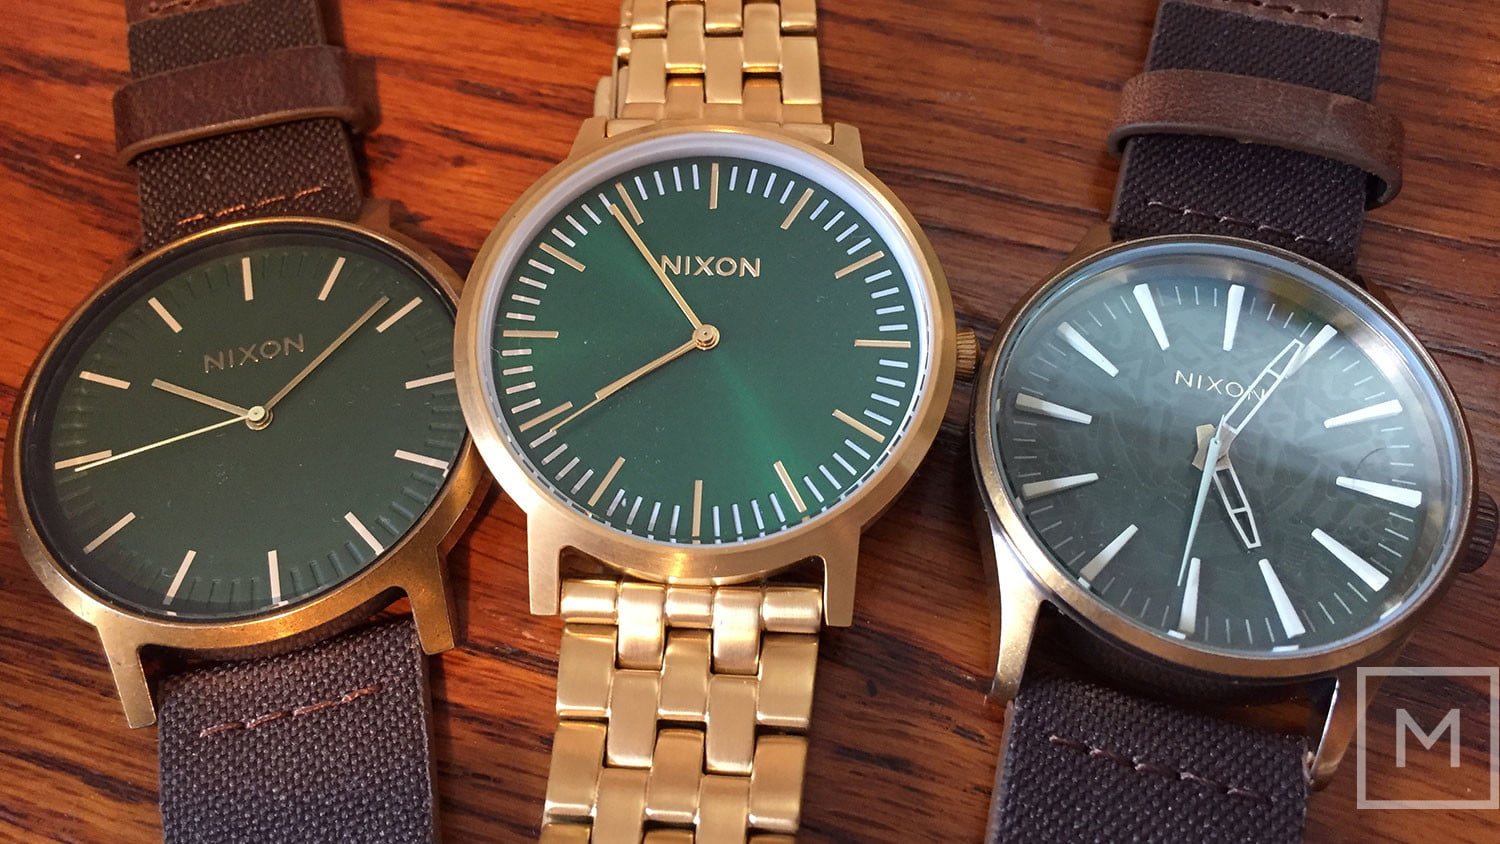 Nixon Watches Nixon Watches Are A Fine Choice For A Gentleman S First Timepiece